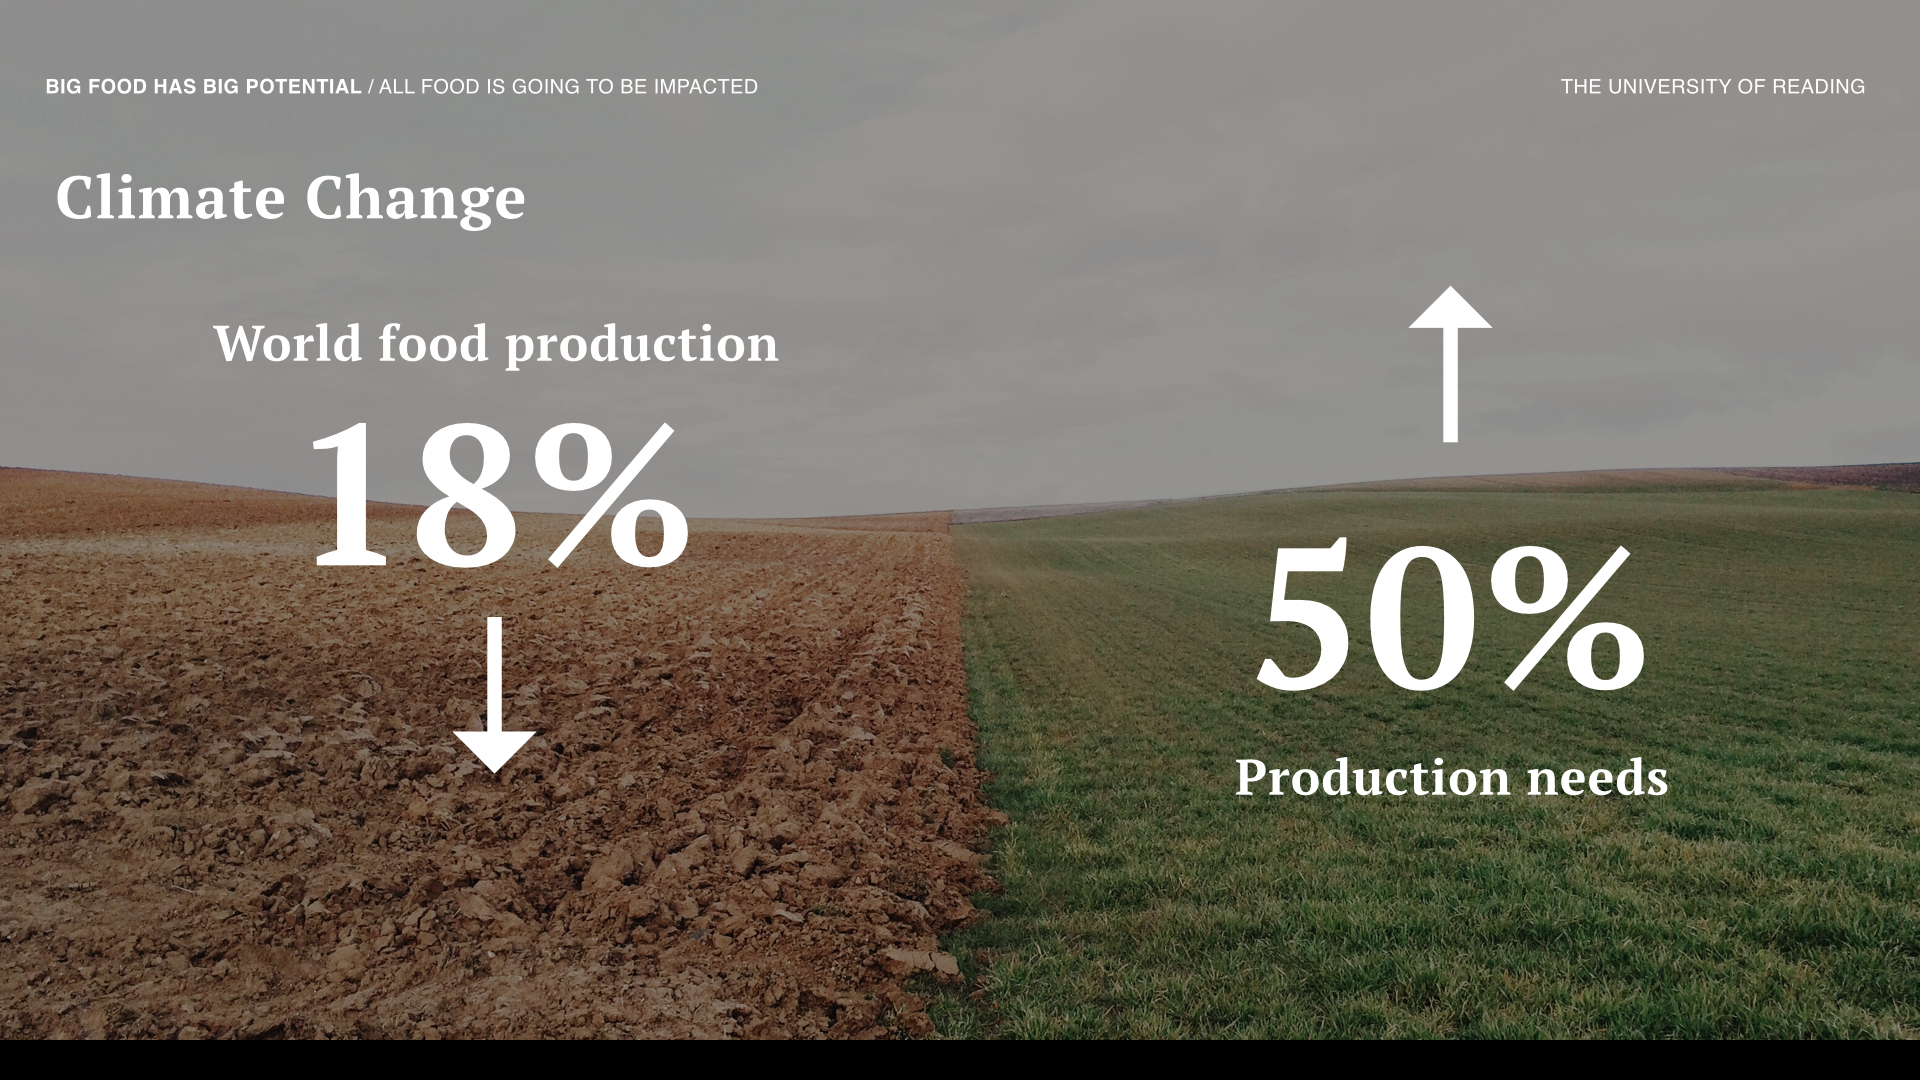 Climate change would cause an 18% drop in world food production, while the global community needs to produce at least 50% more by 2050 to meet the population needs.